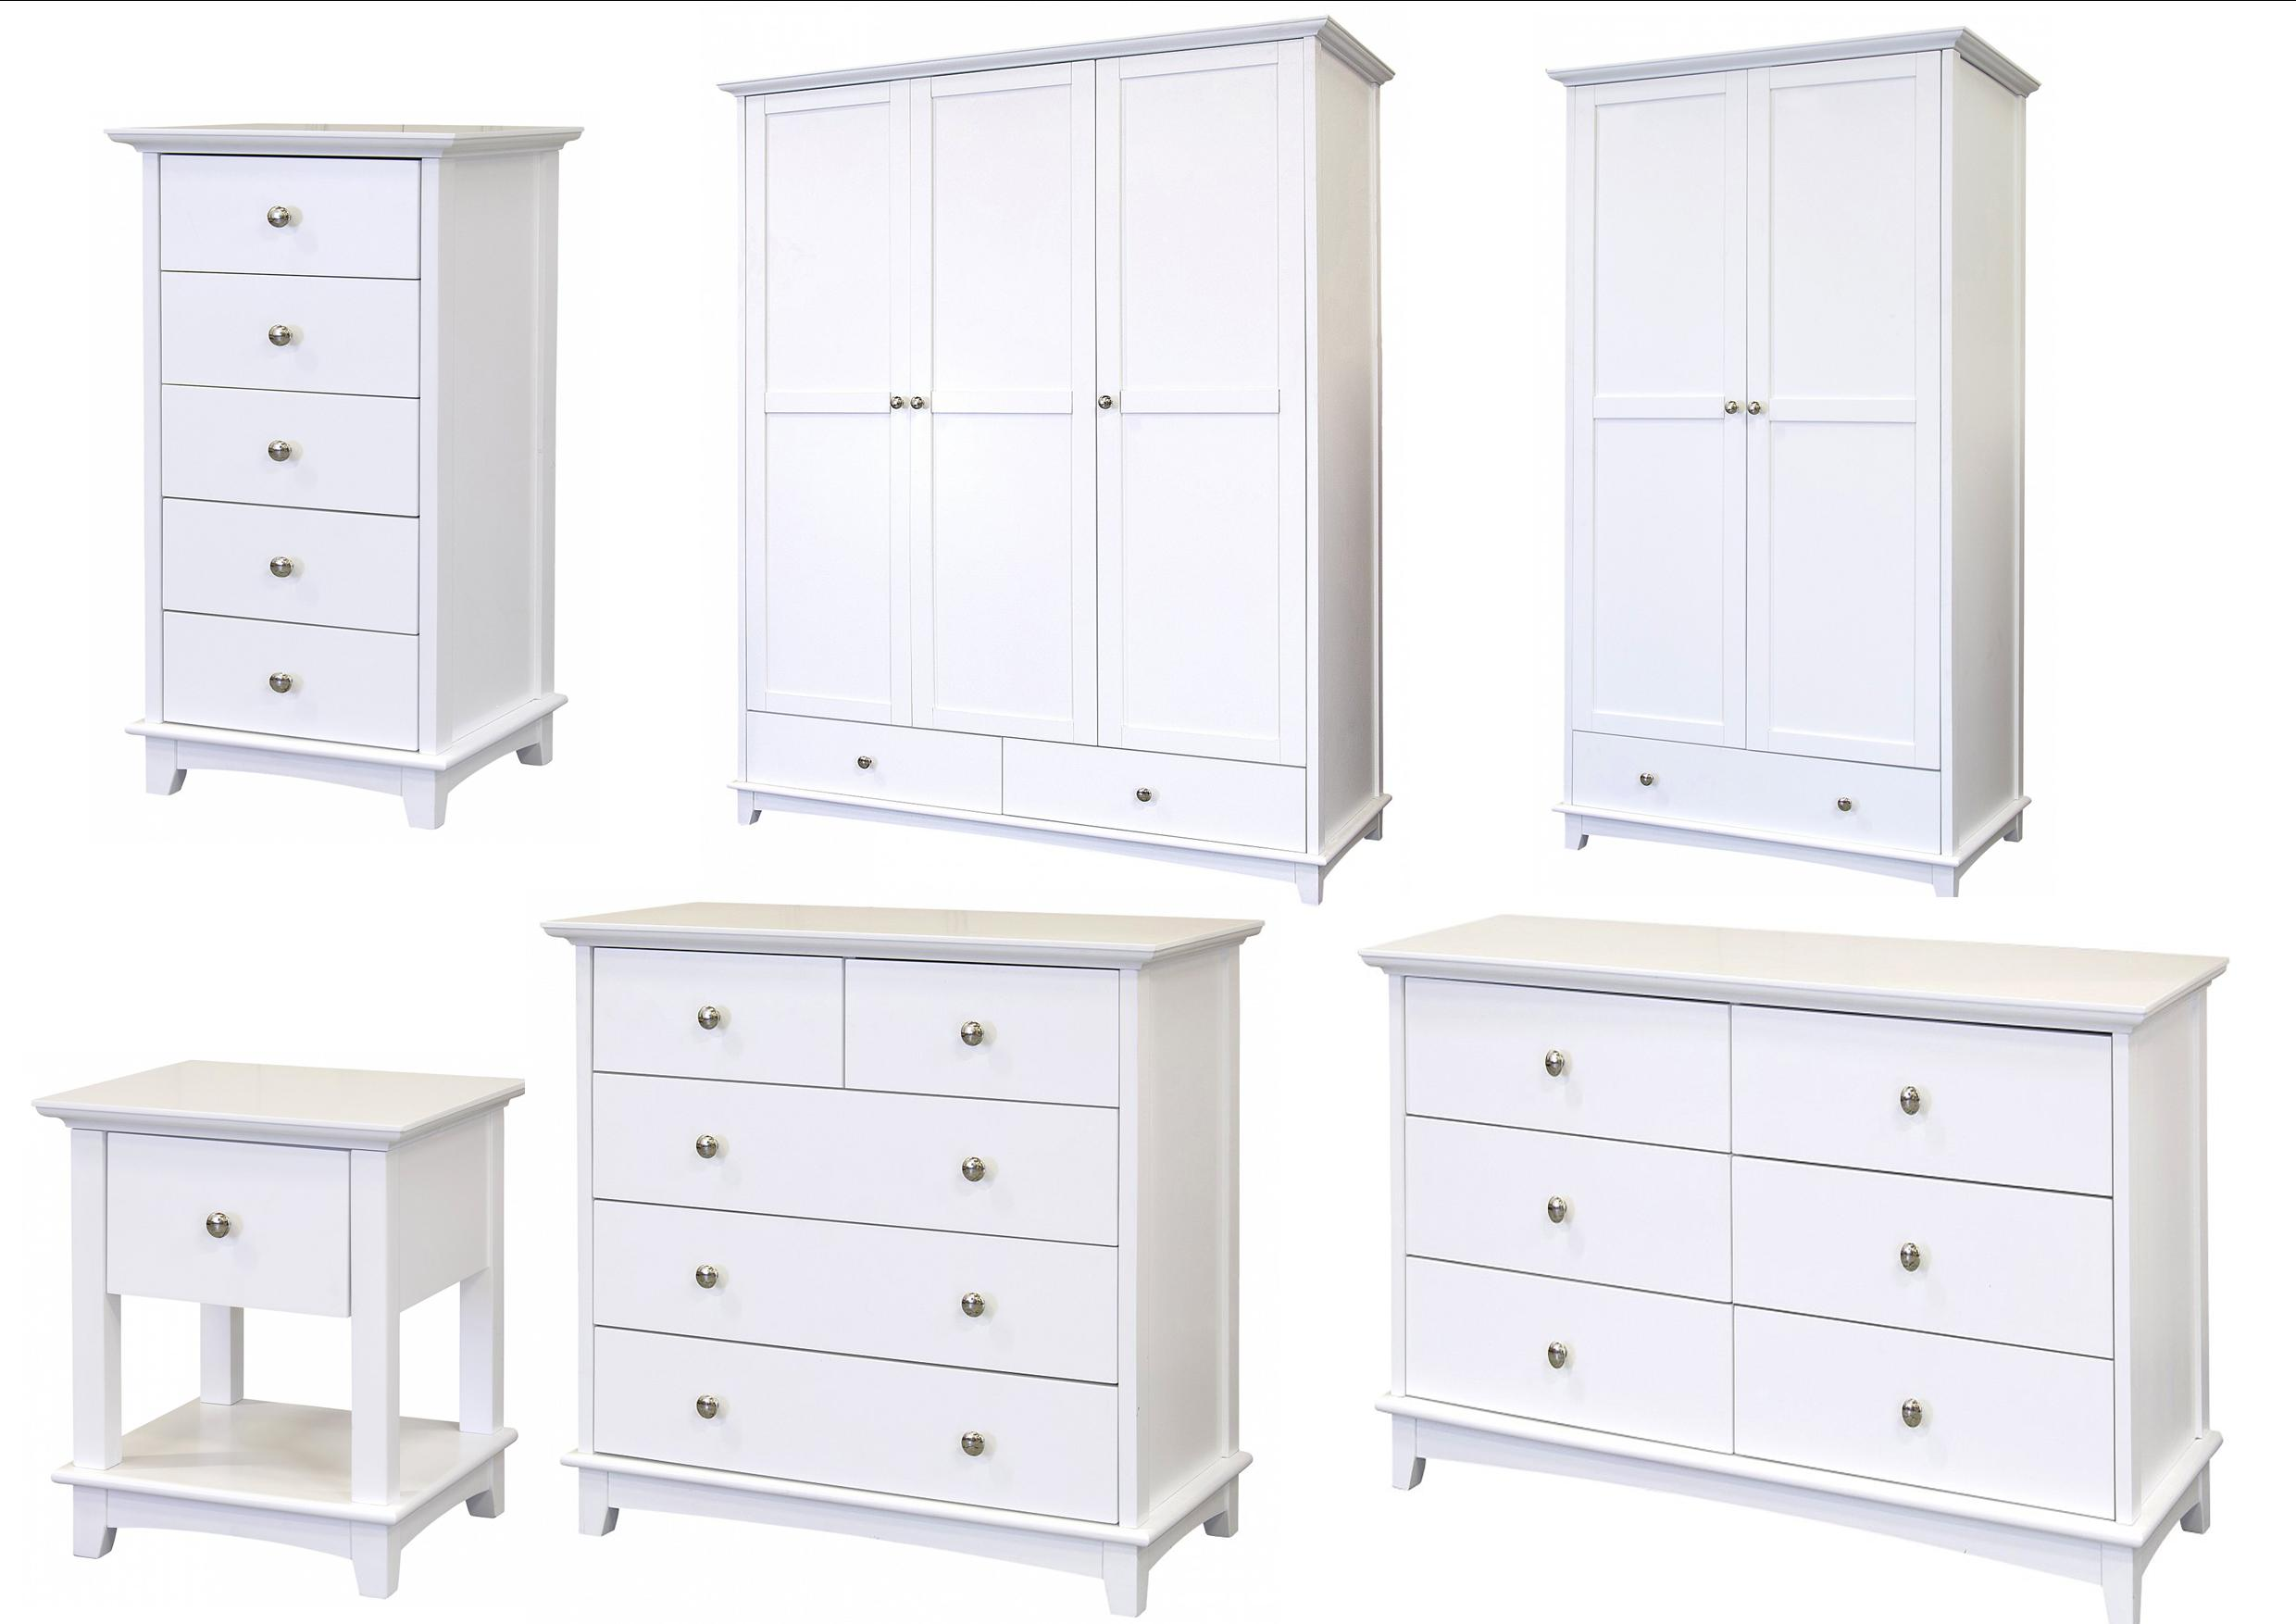 Toulouse White Painted Bedroom Furniture Bedside Chest Of Drawers Wardrobes Ebay